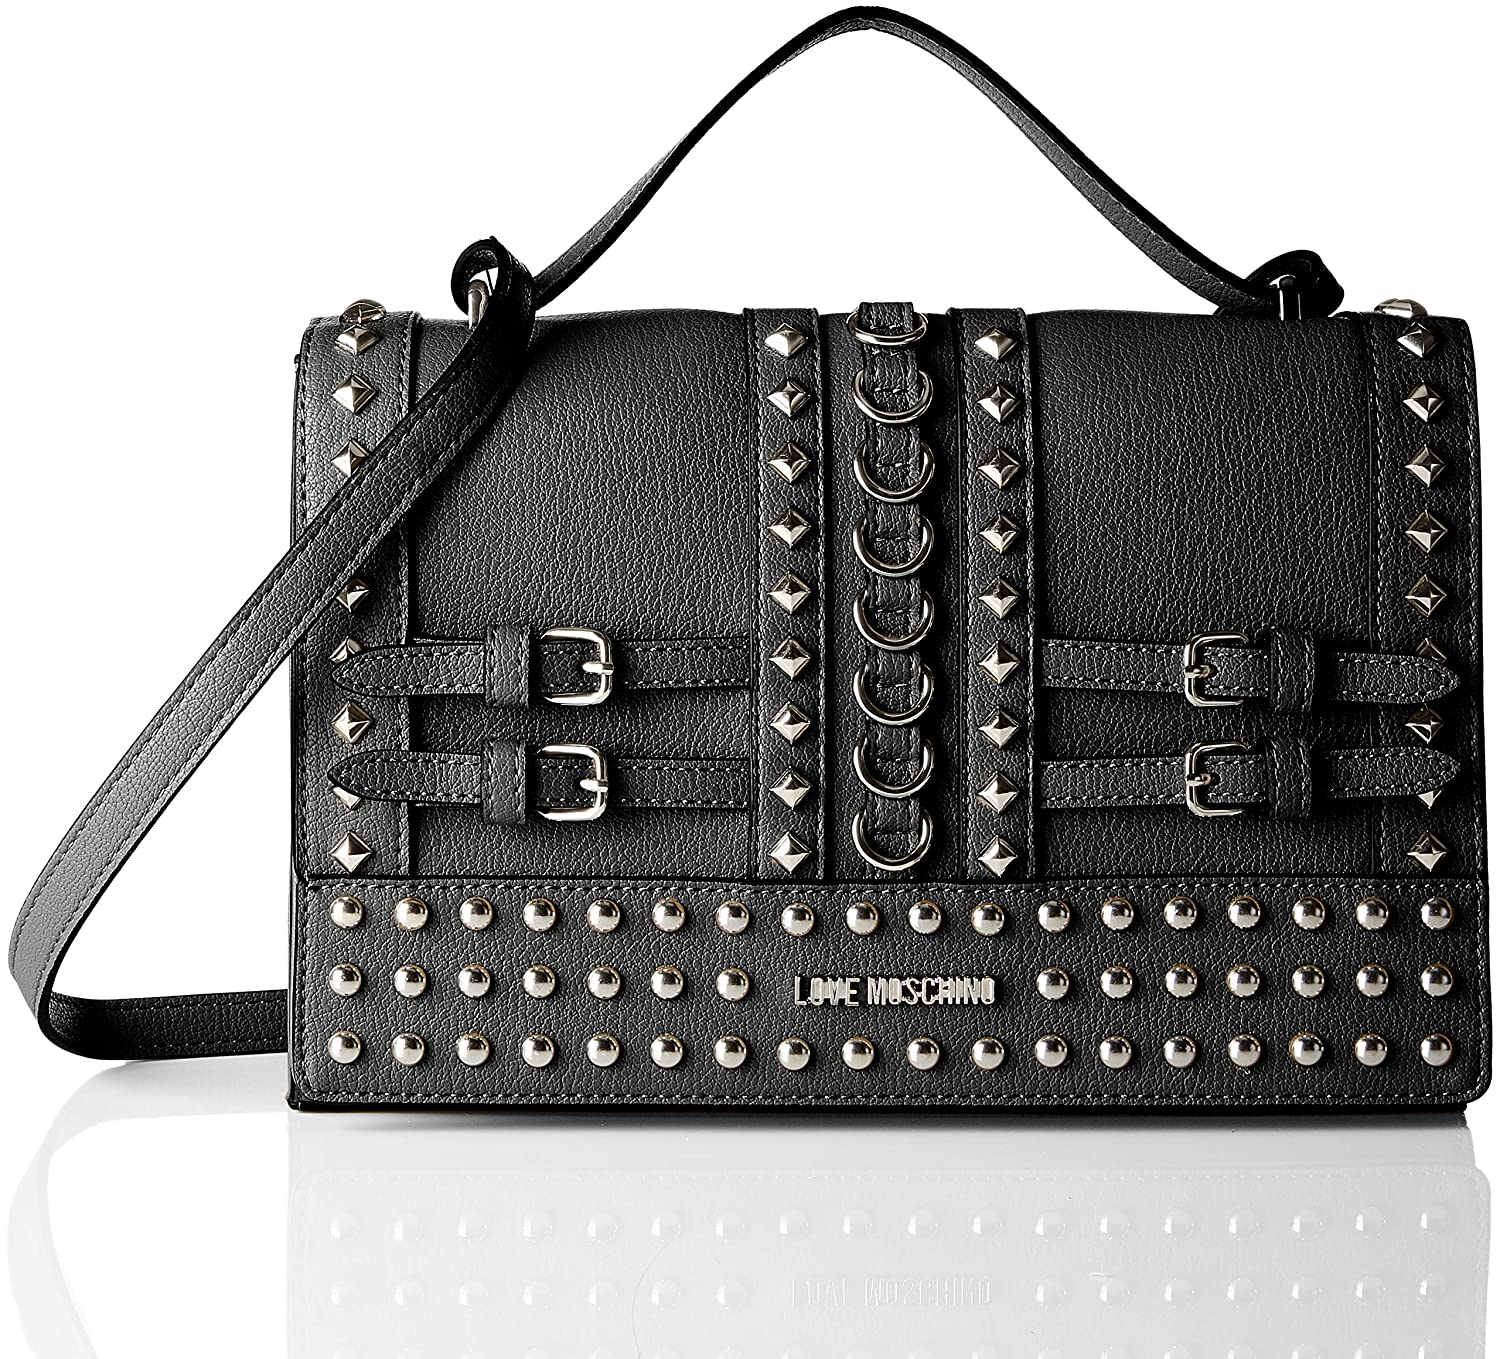 c03ec2b5ce2 Amazon.com: LOVE Moschino Women's Shoulder Bag with Belt Studs Black One  Size: Shoes